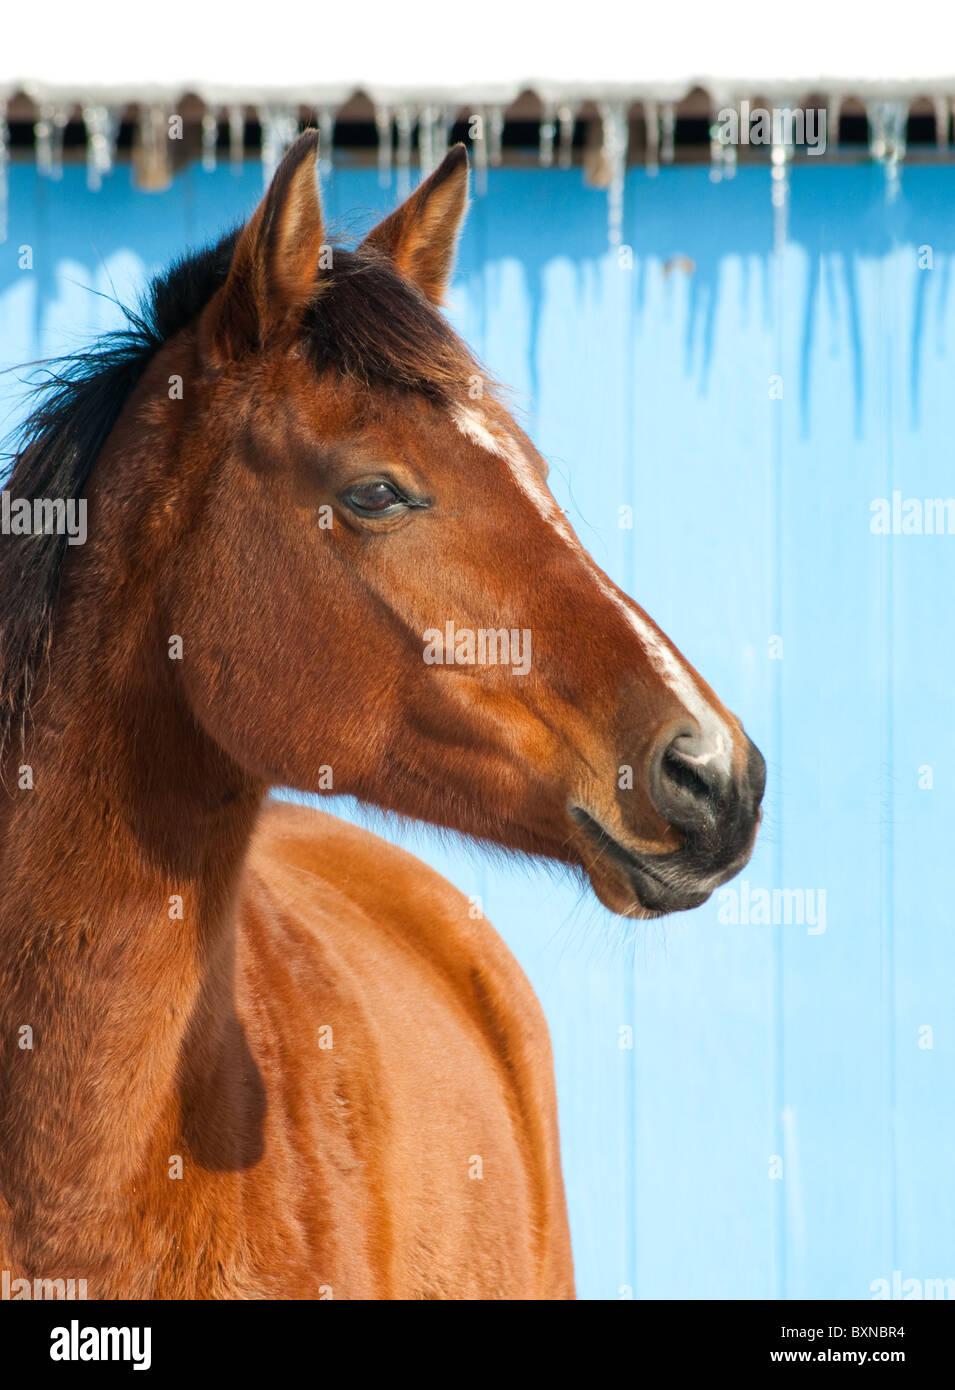 Bay horse against blue barn on a cold sunny winter day - Stock Image